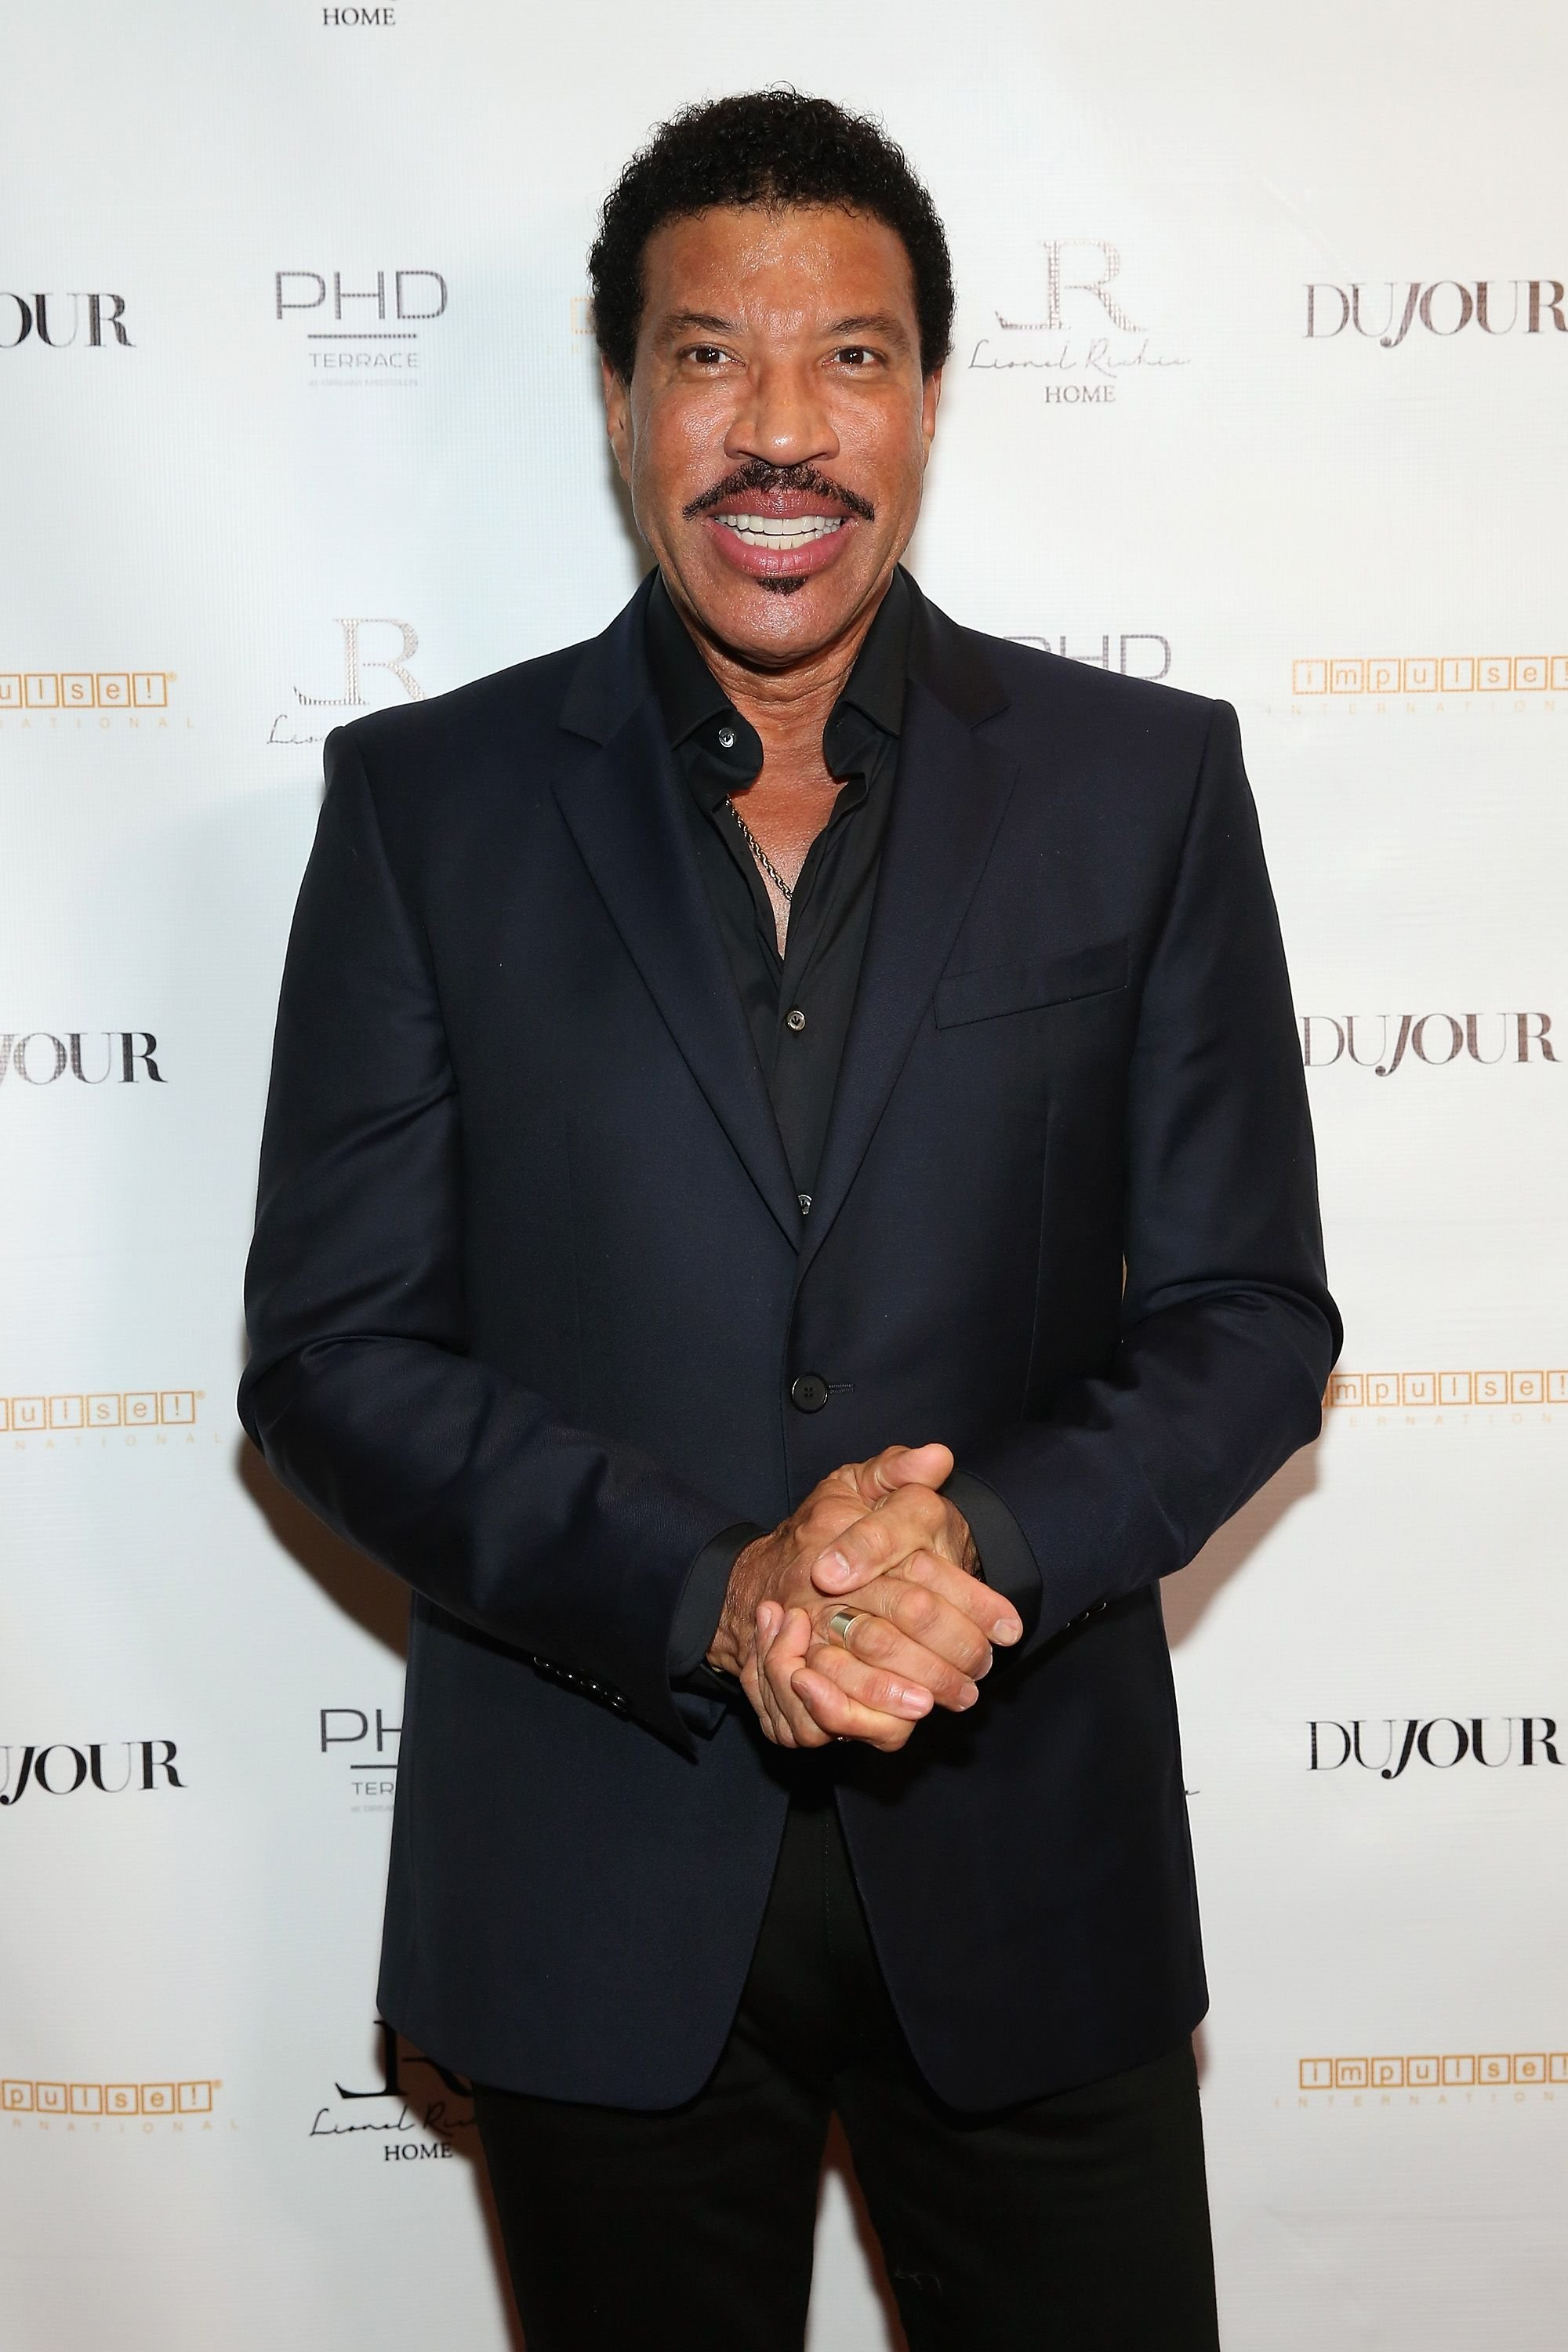 Lionel Richie at Jason Binn's DuJour Magazine and Lionel Richie Home Collection launch with IMPULSE! International on October 27, 2015 | Photo: Getty Images